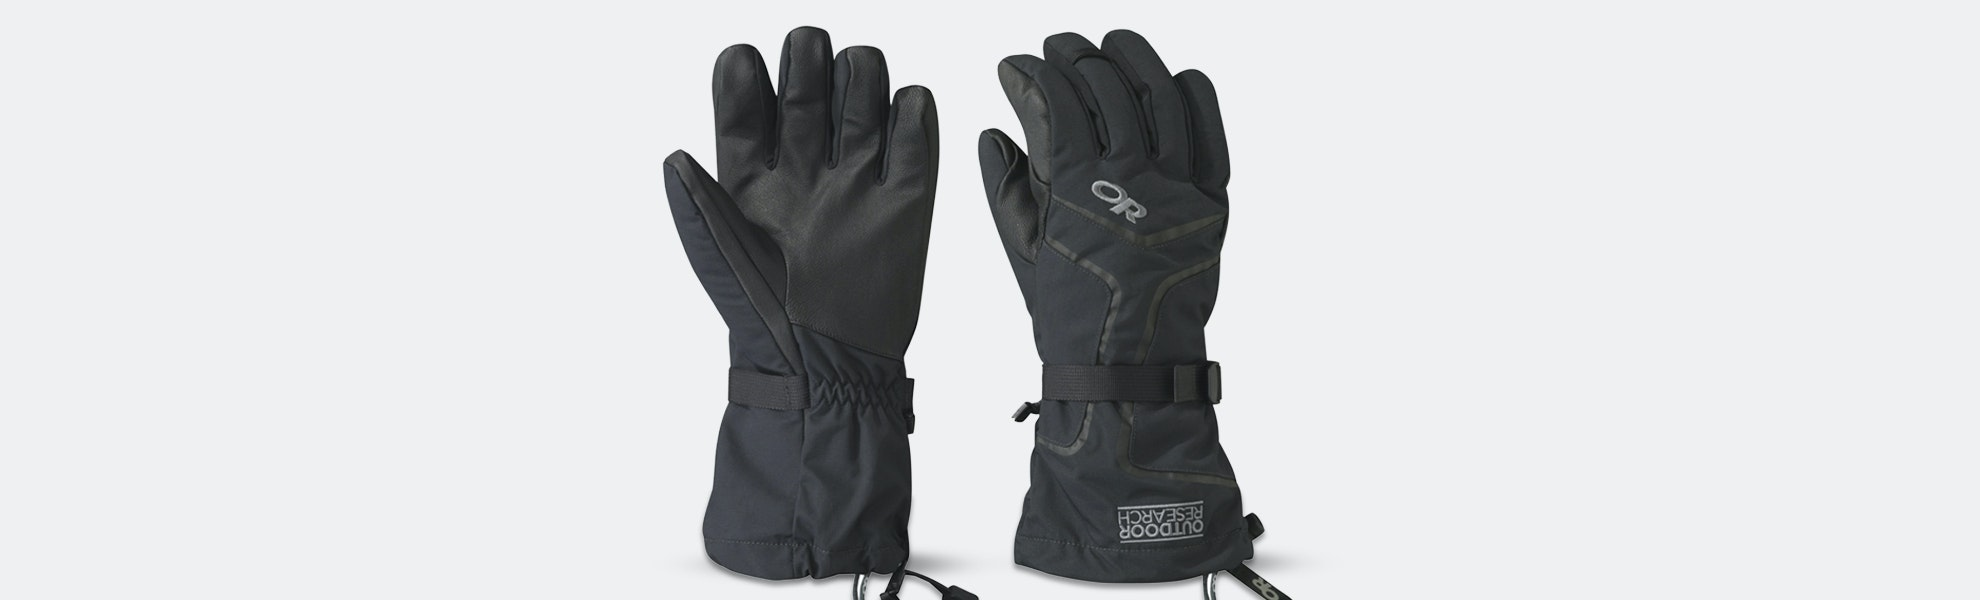 Outdoor Research Highcamp Gloves & Mitts